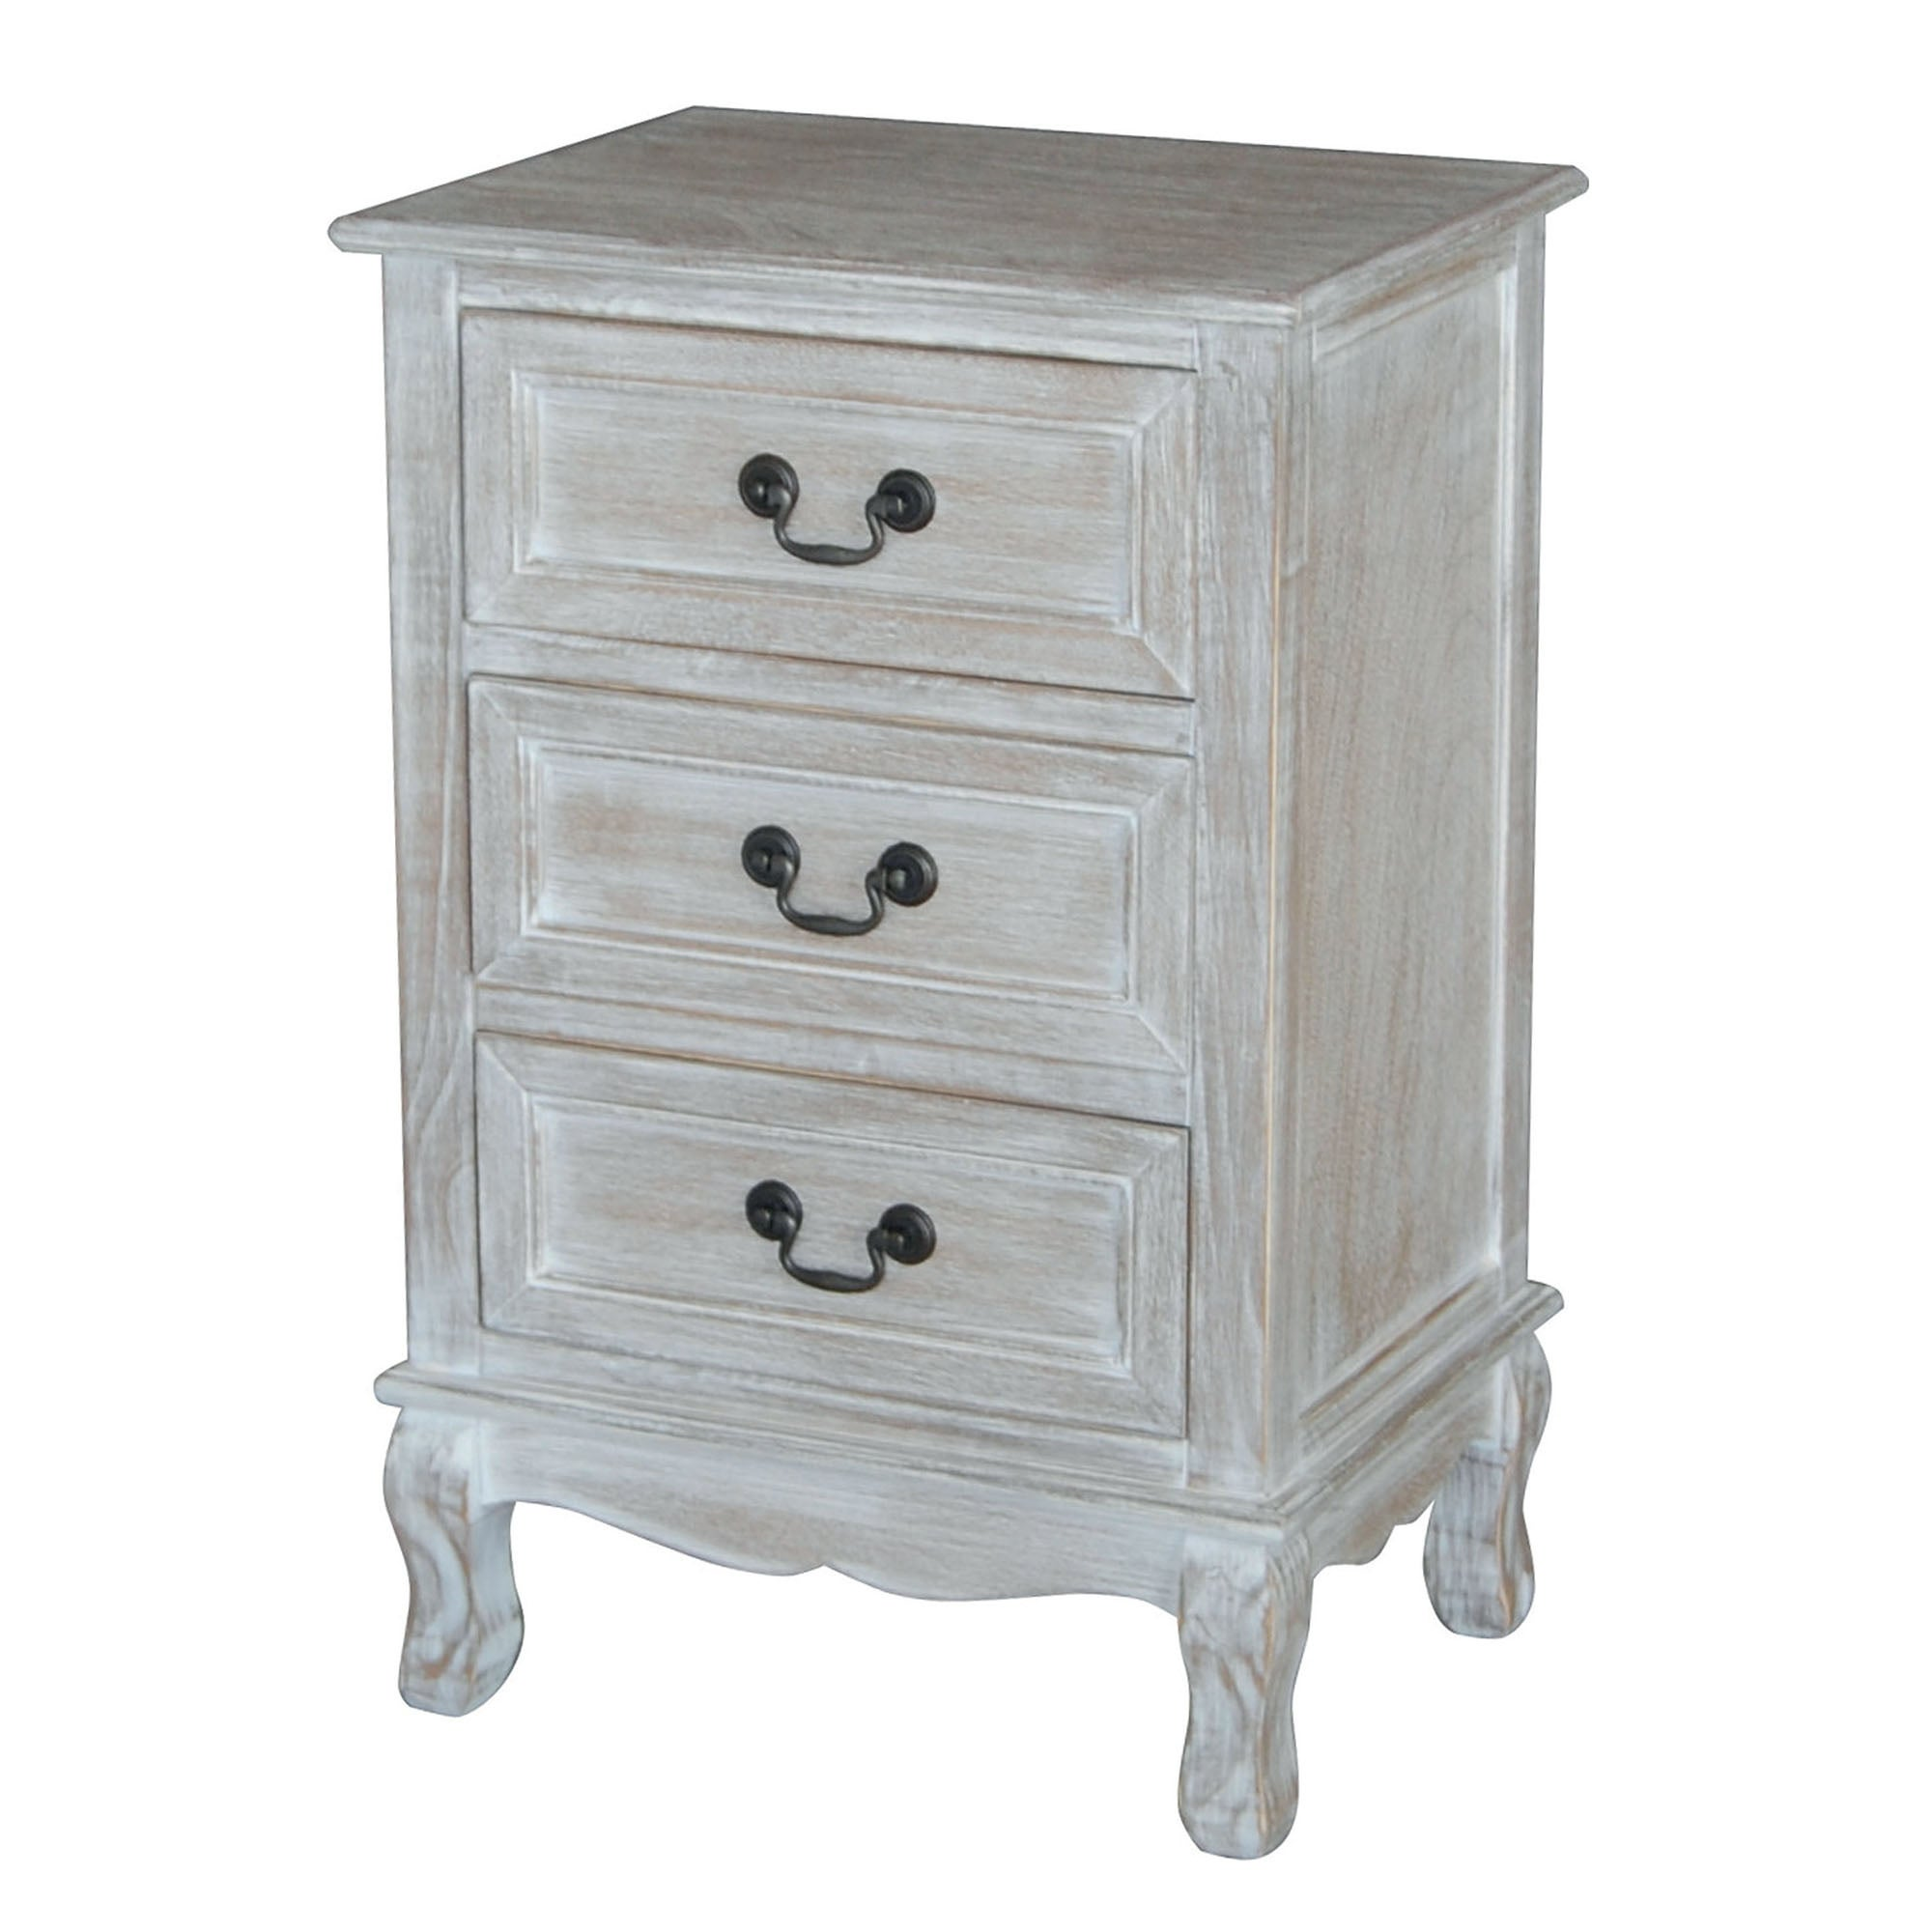 Bordeaux Washed Wood 3 Drawer Bedside Table